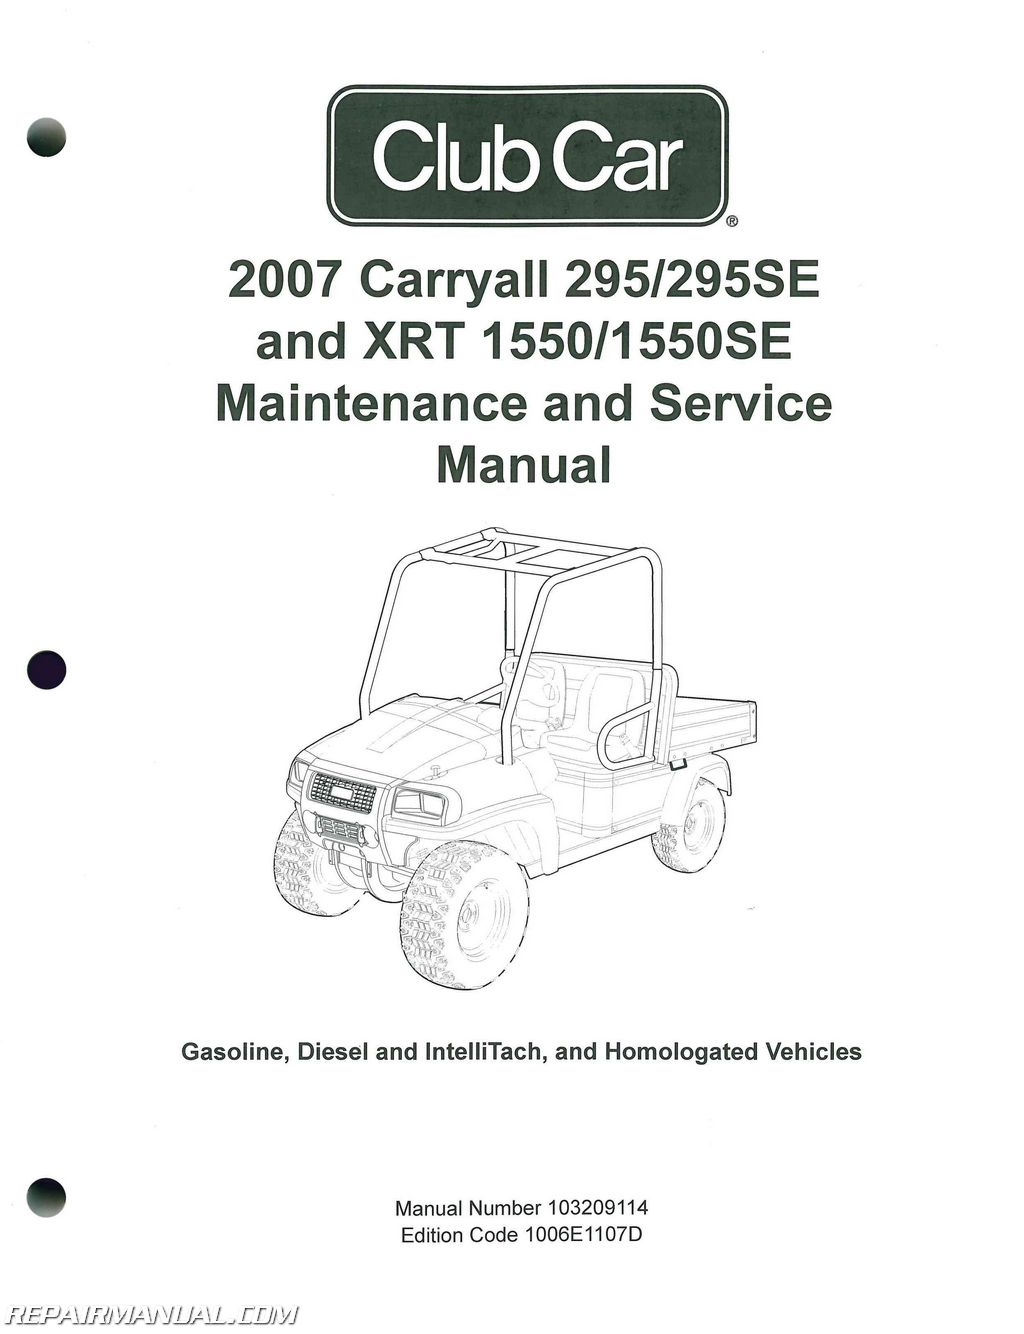 hight resolution of 2007 club car carryall service manual 295 295se xrt 1550 1550se club car golf cart wiring diagram for 1996 club car carryall 6 wiring diagram